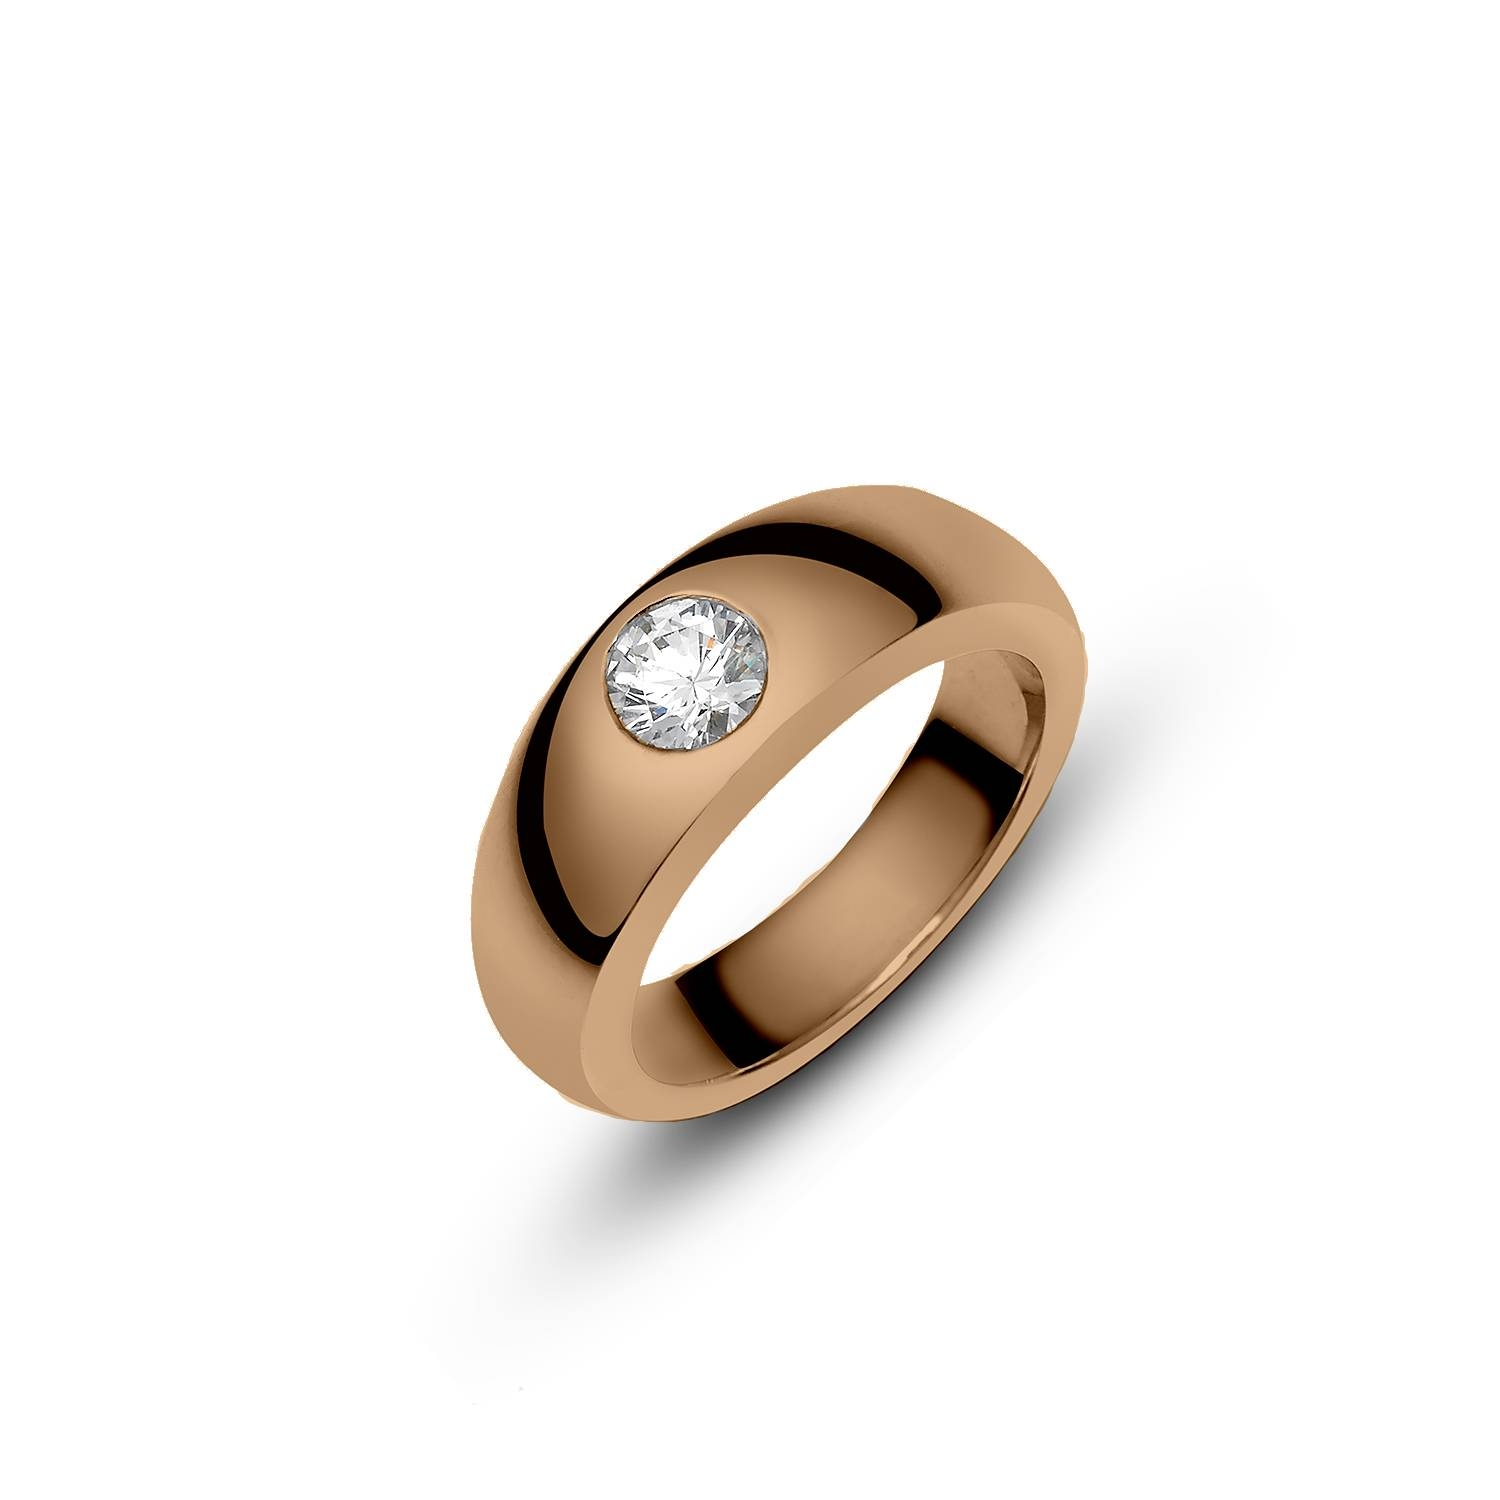 Sleek Appeal With A Diamond Embedded Ring (Rose Gold) – Frou Within Embedded Diamond Engagement Rings (Gallery 8 of 15)